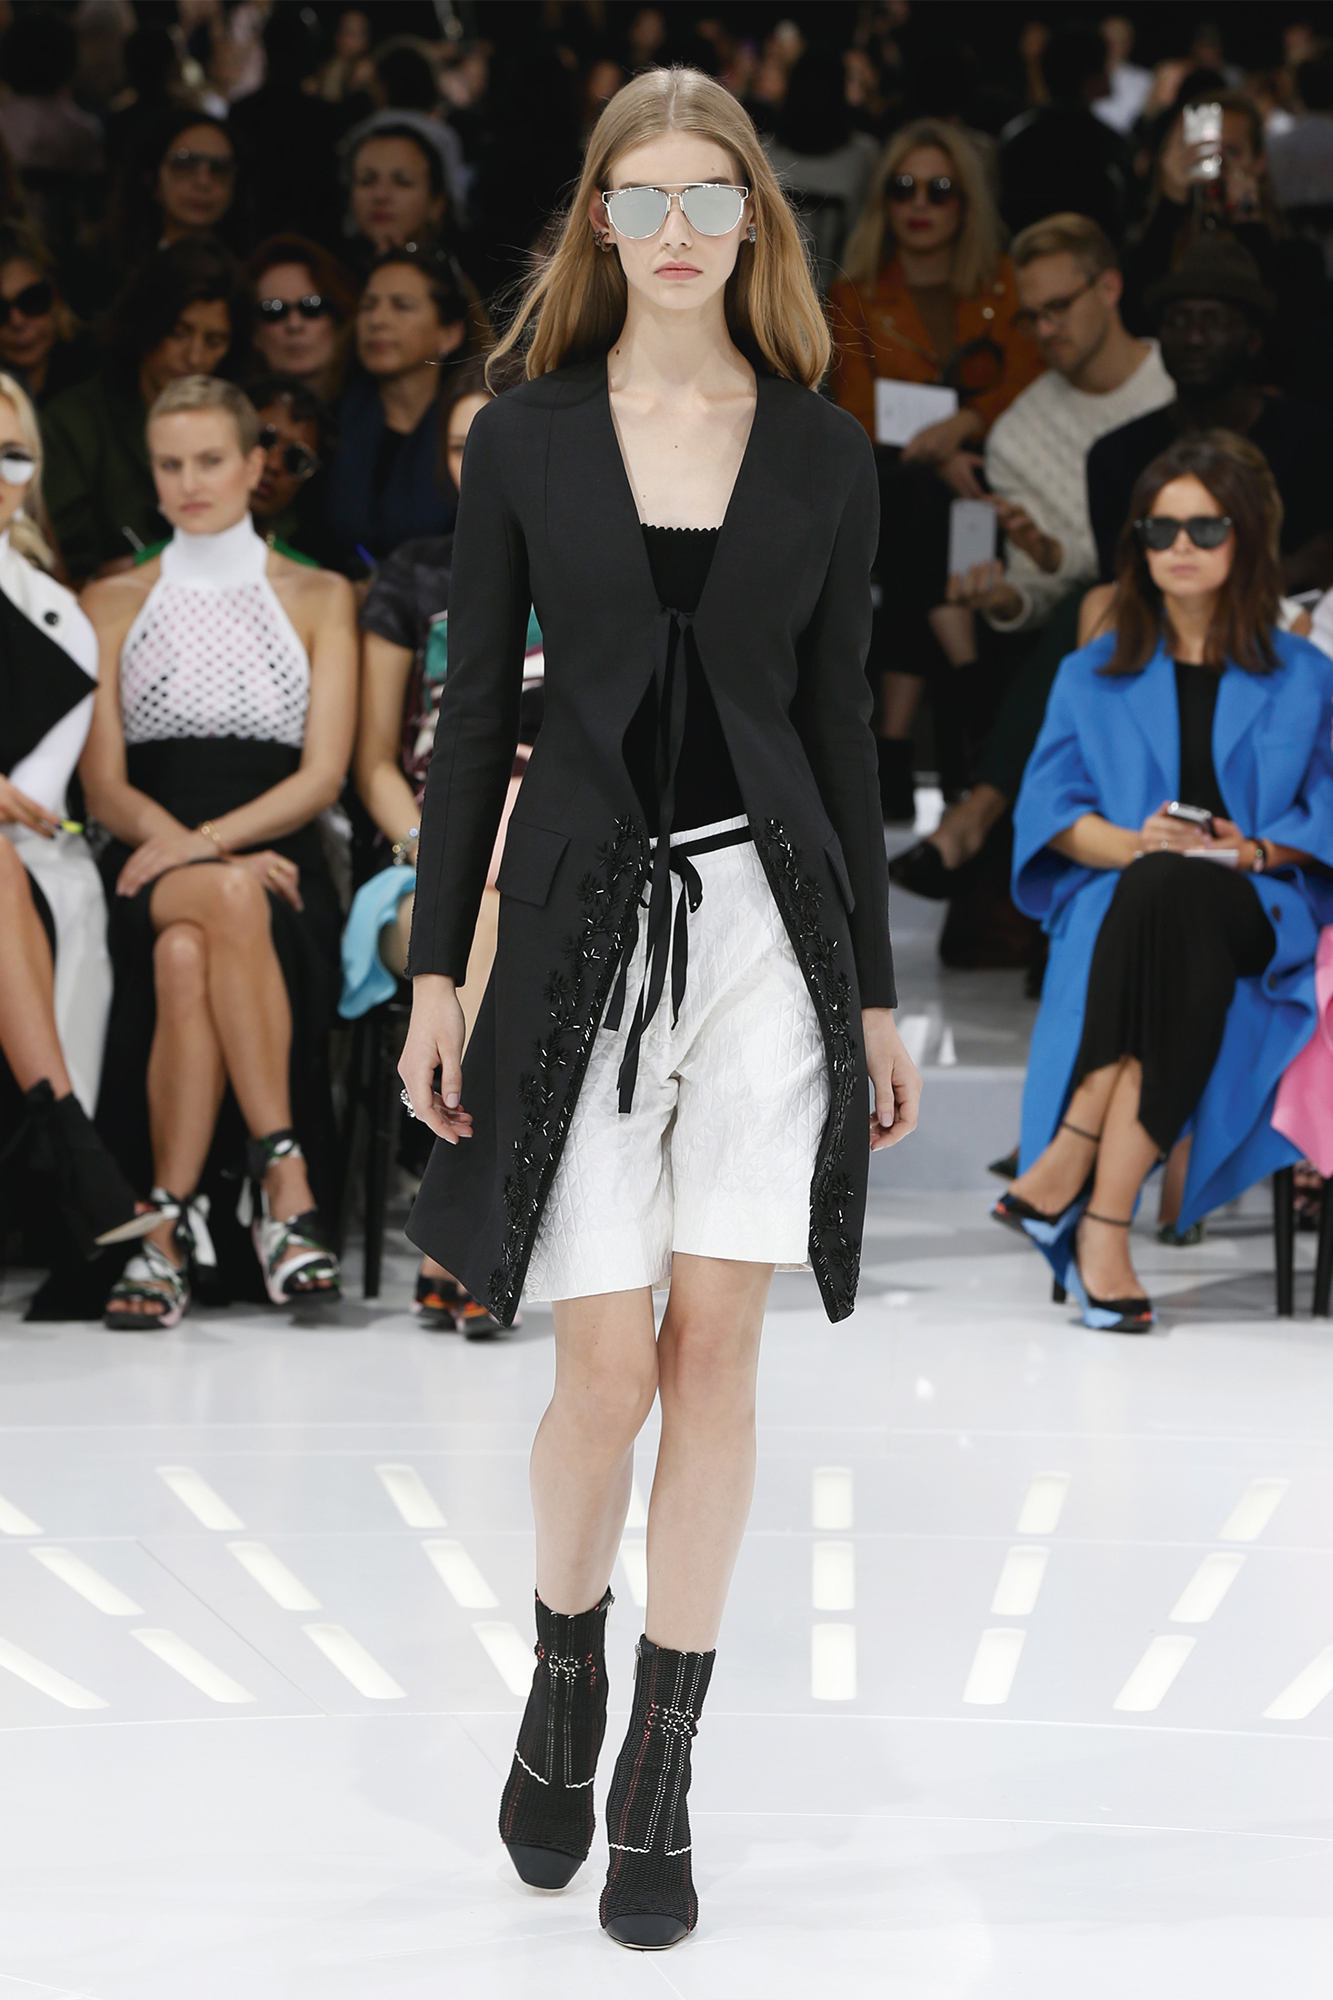 New Western Fashion Christian Dior Ready To Wear Dresses Spring Summer Collection 2015 (36)